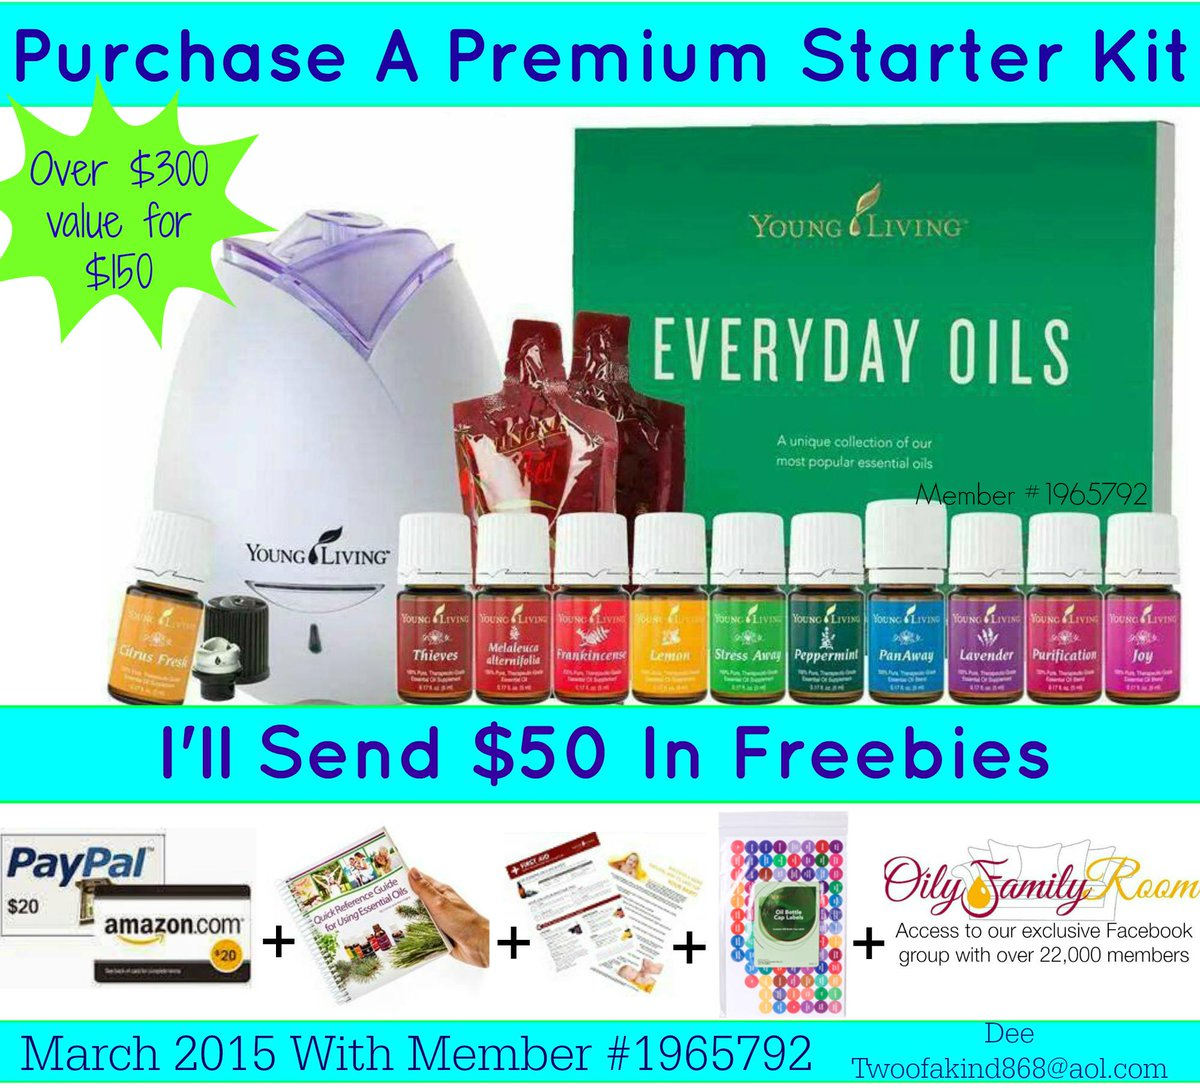 Read to invest in your #health - Check out my March #YoungLiving #EssentialOils #DEAL http://t.co/2Y8tVh1Ech #natural http://t.co/U5shabXyQ0